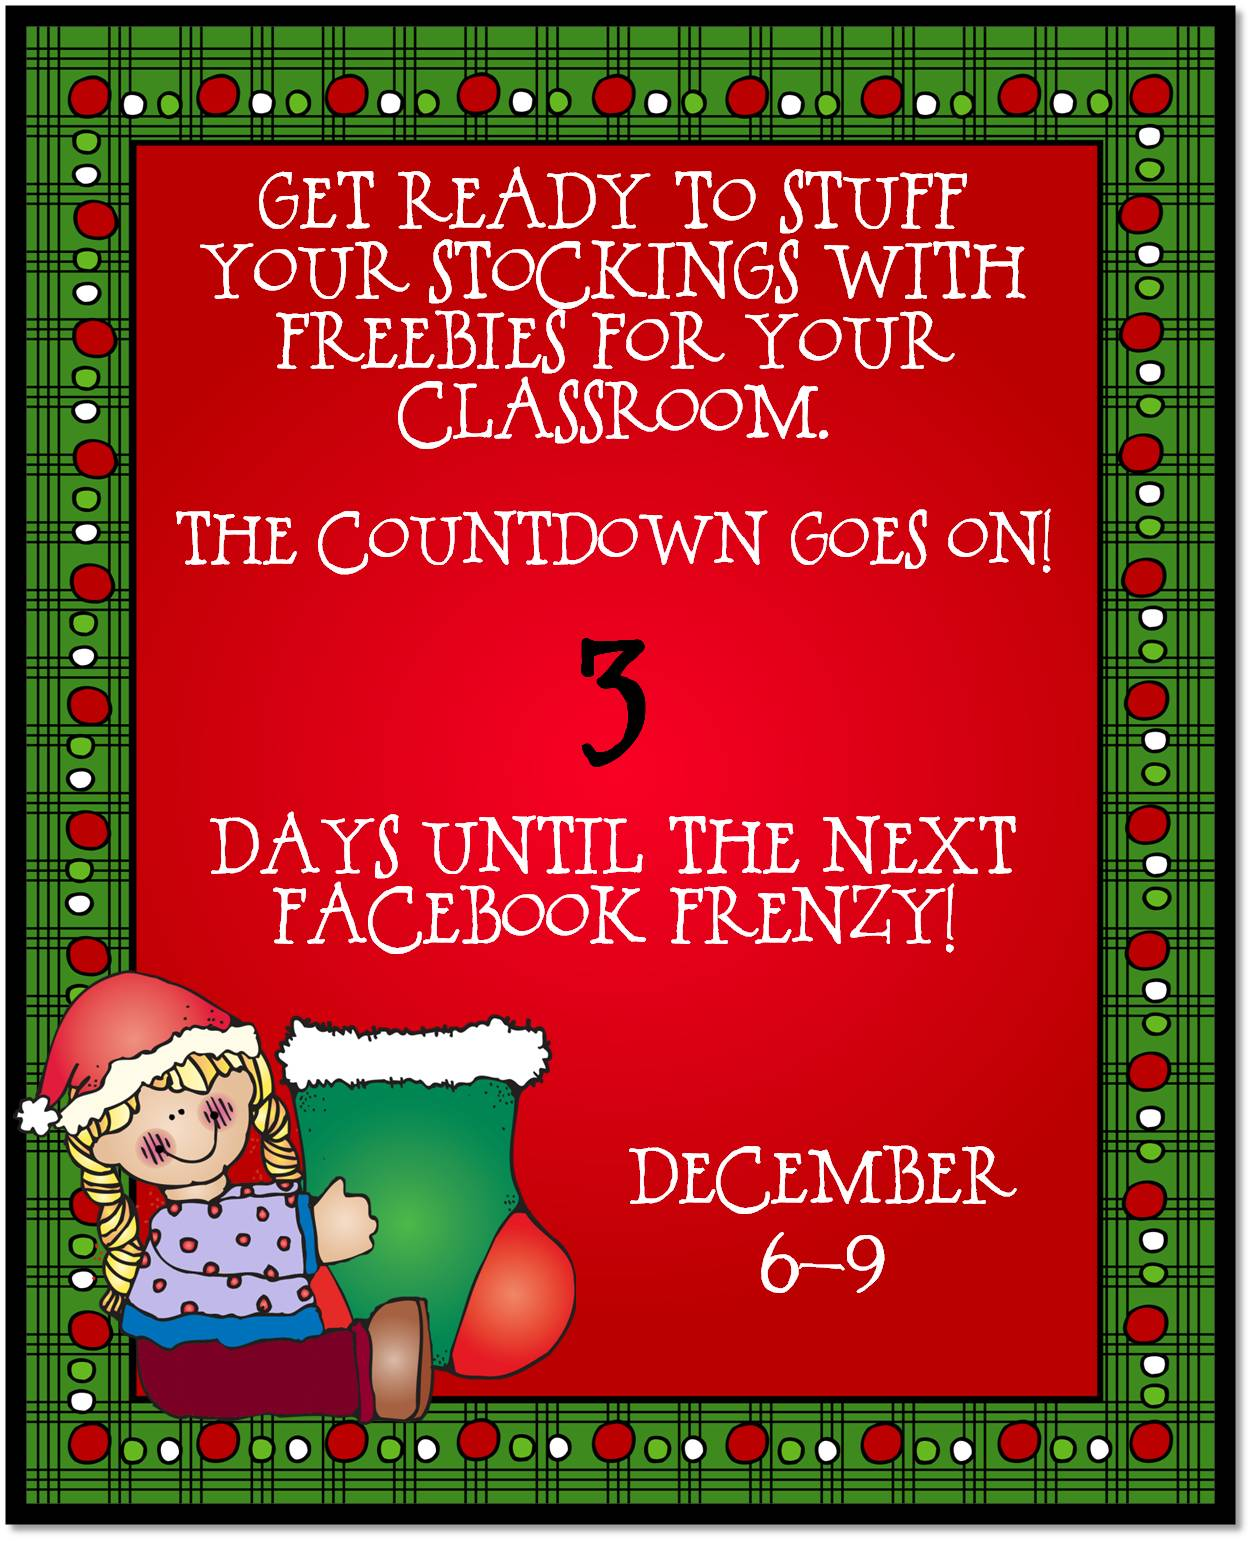 December FB Frenzy Countdown day 3.png